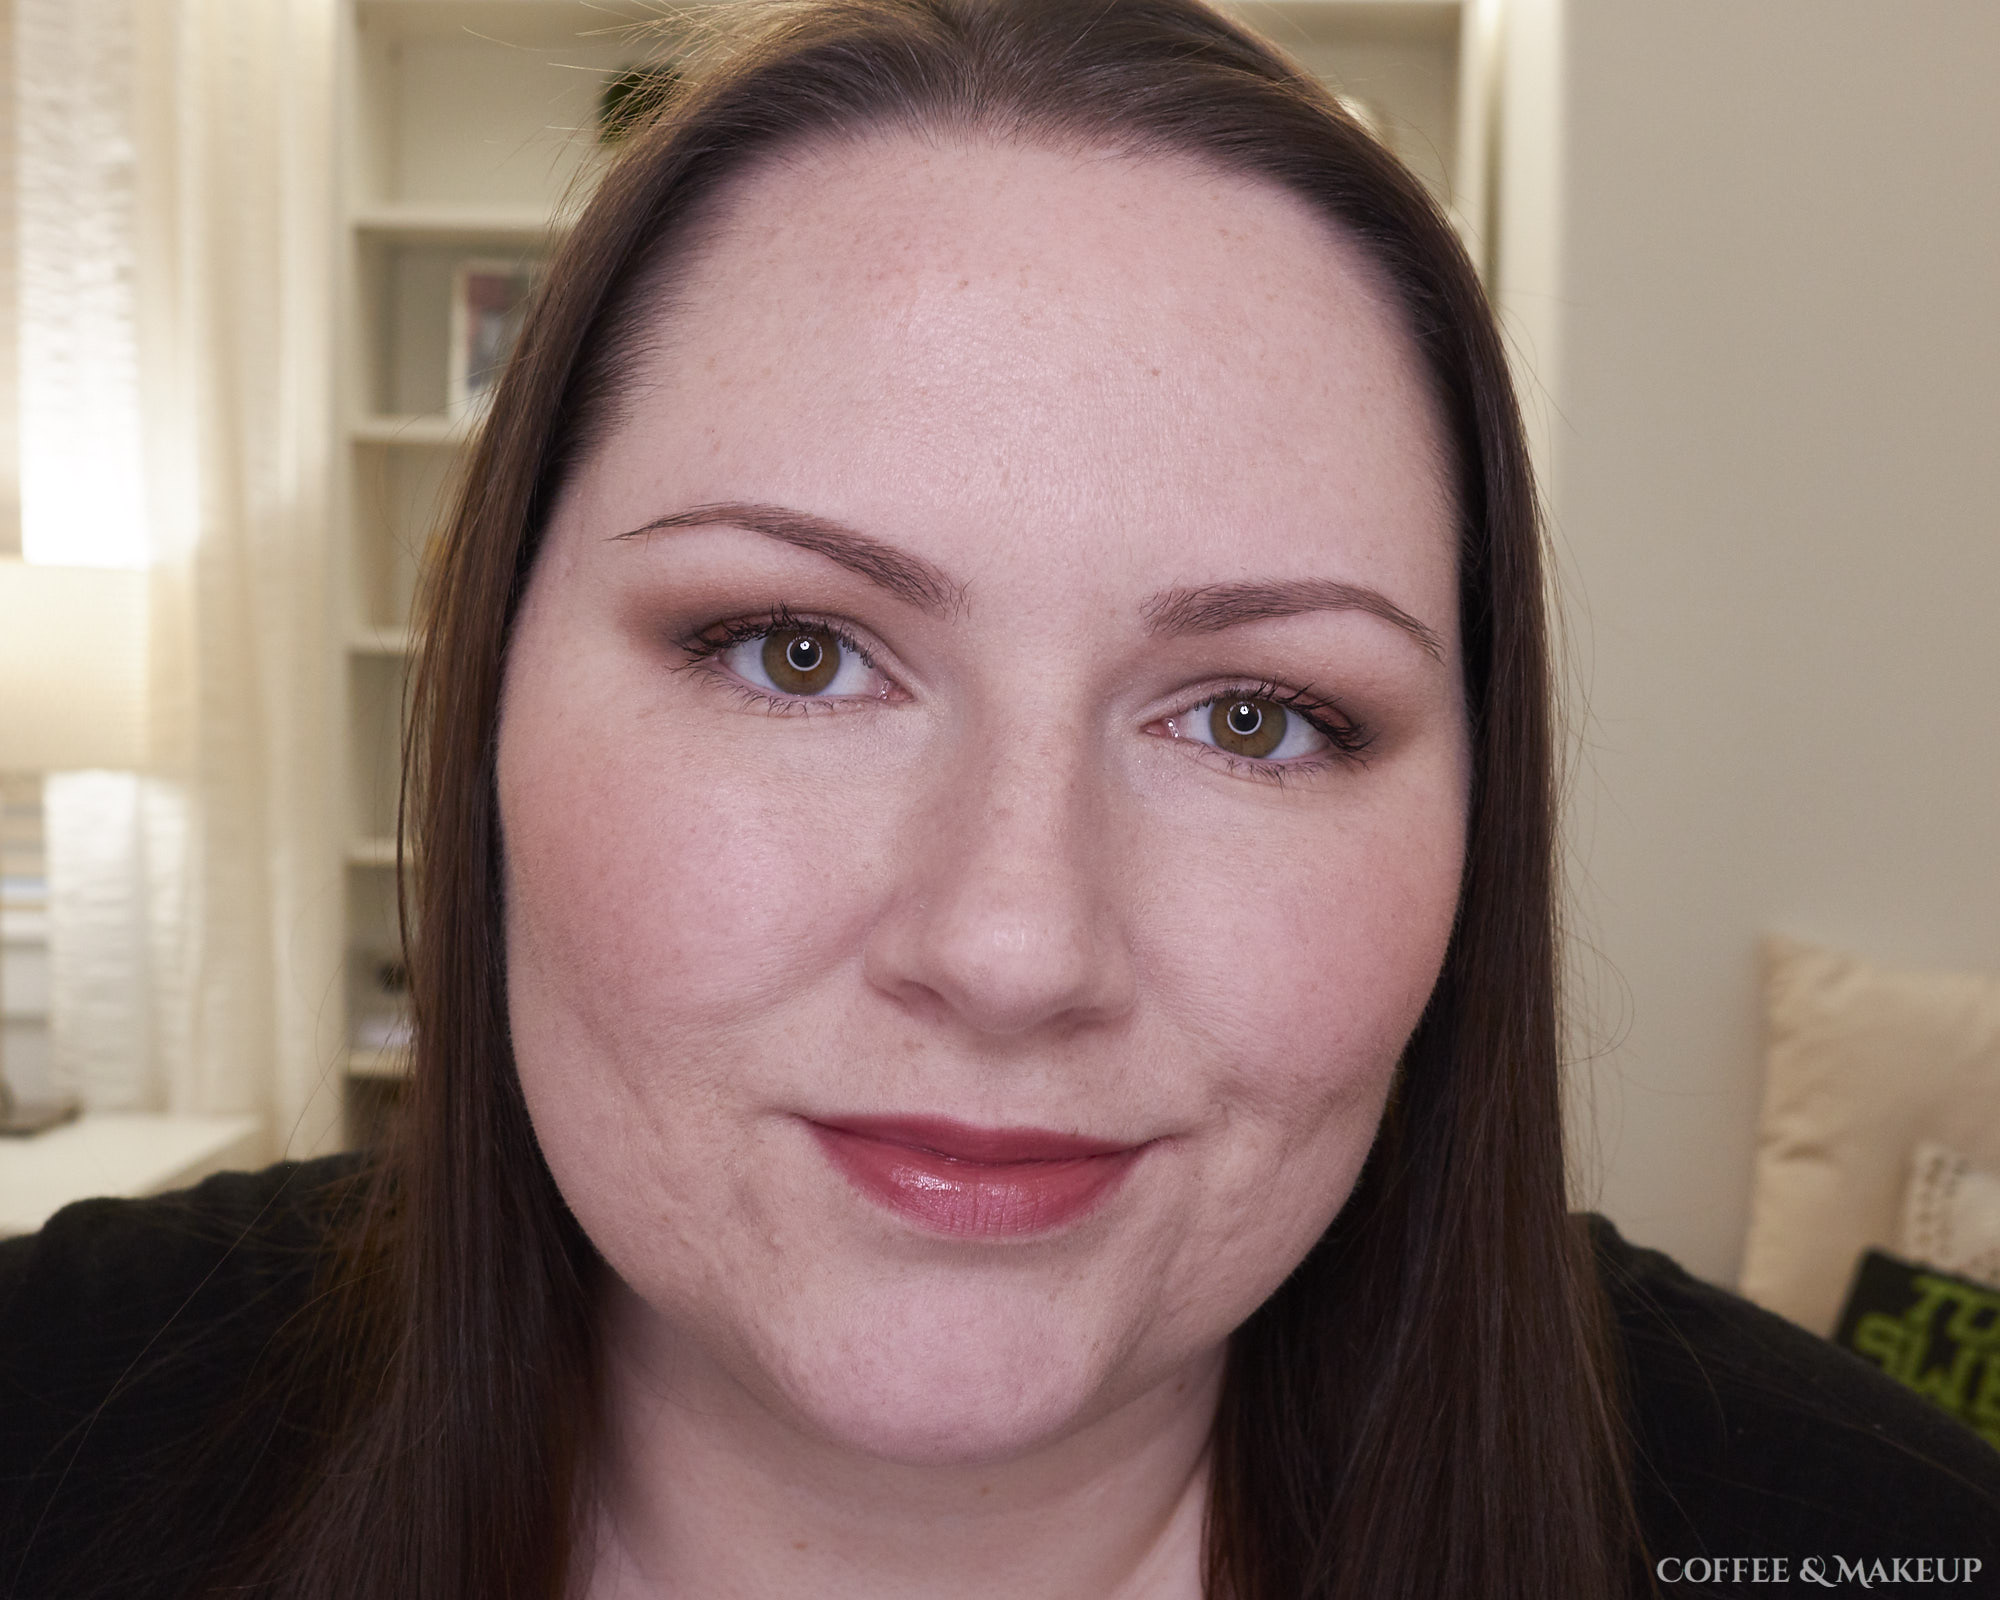 Today's Makeup - February 18, 2018